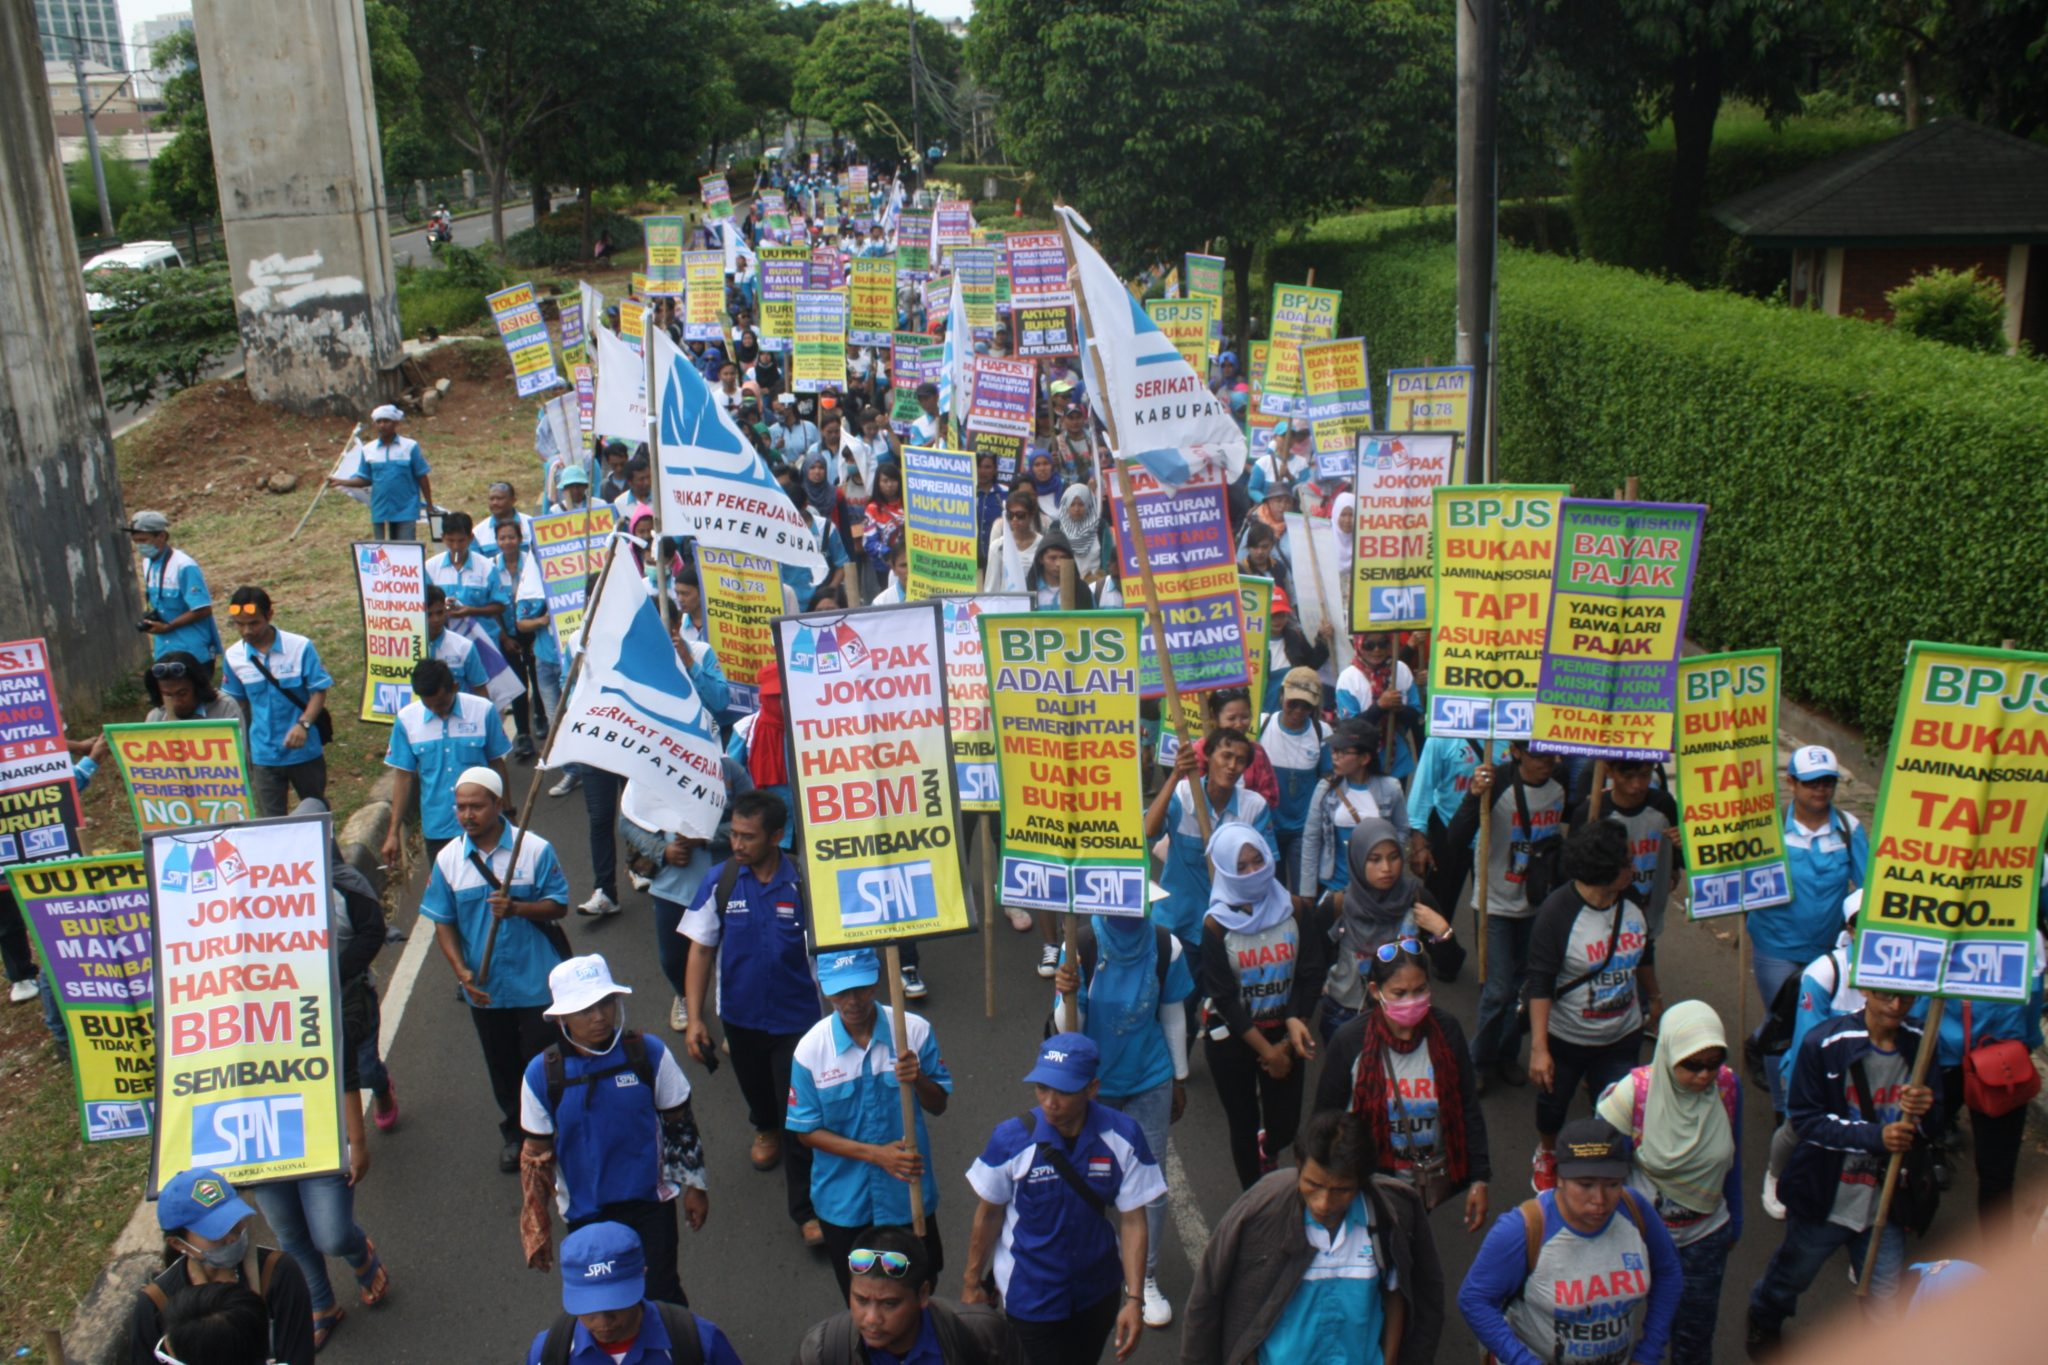 LONG MARCH MASSA AKSI SPN DARI DPR KE GBK